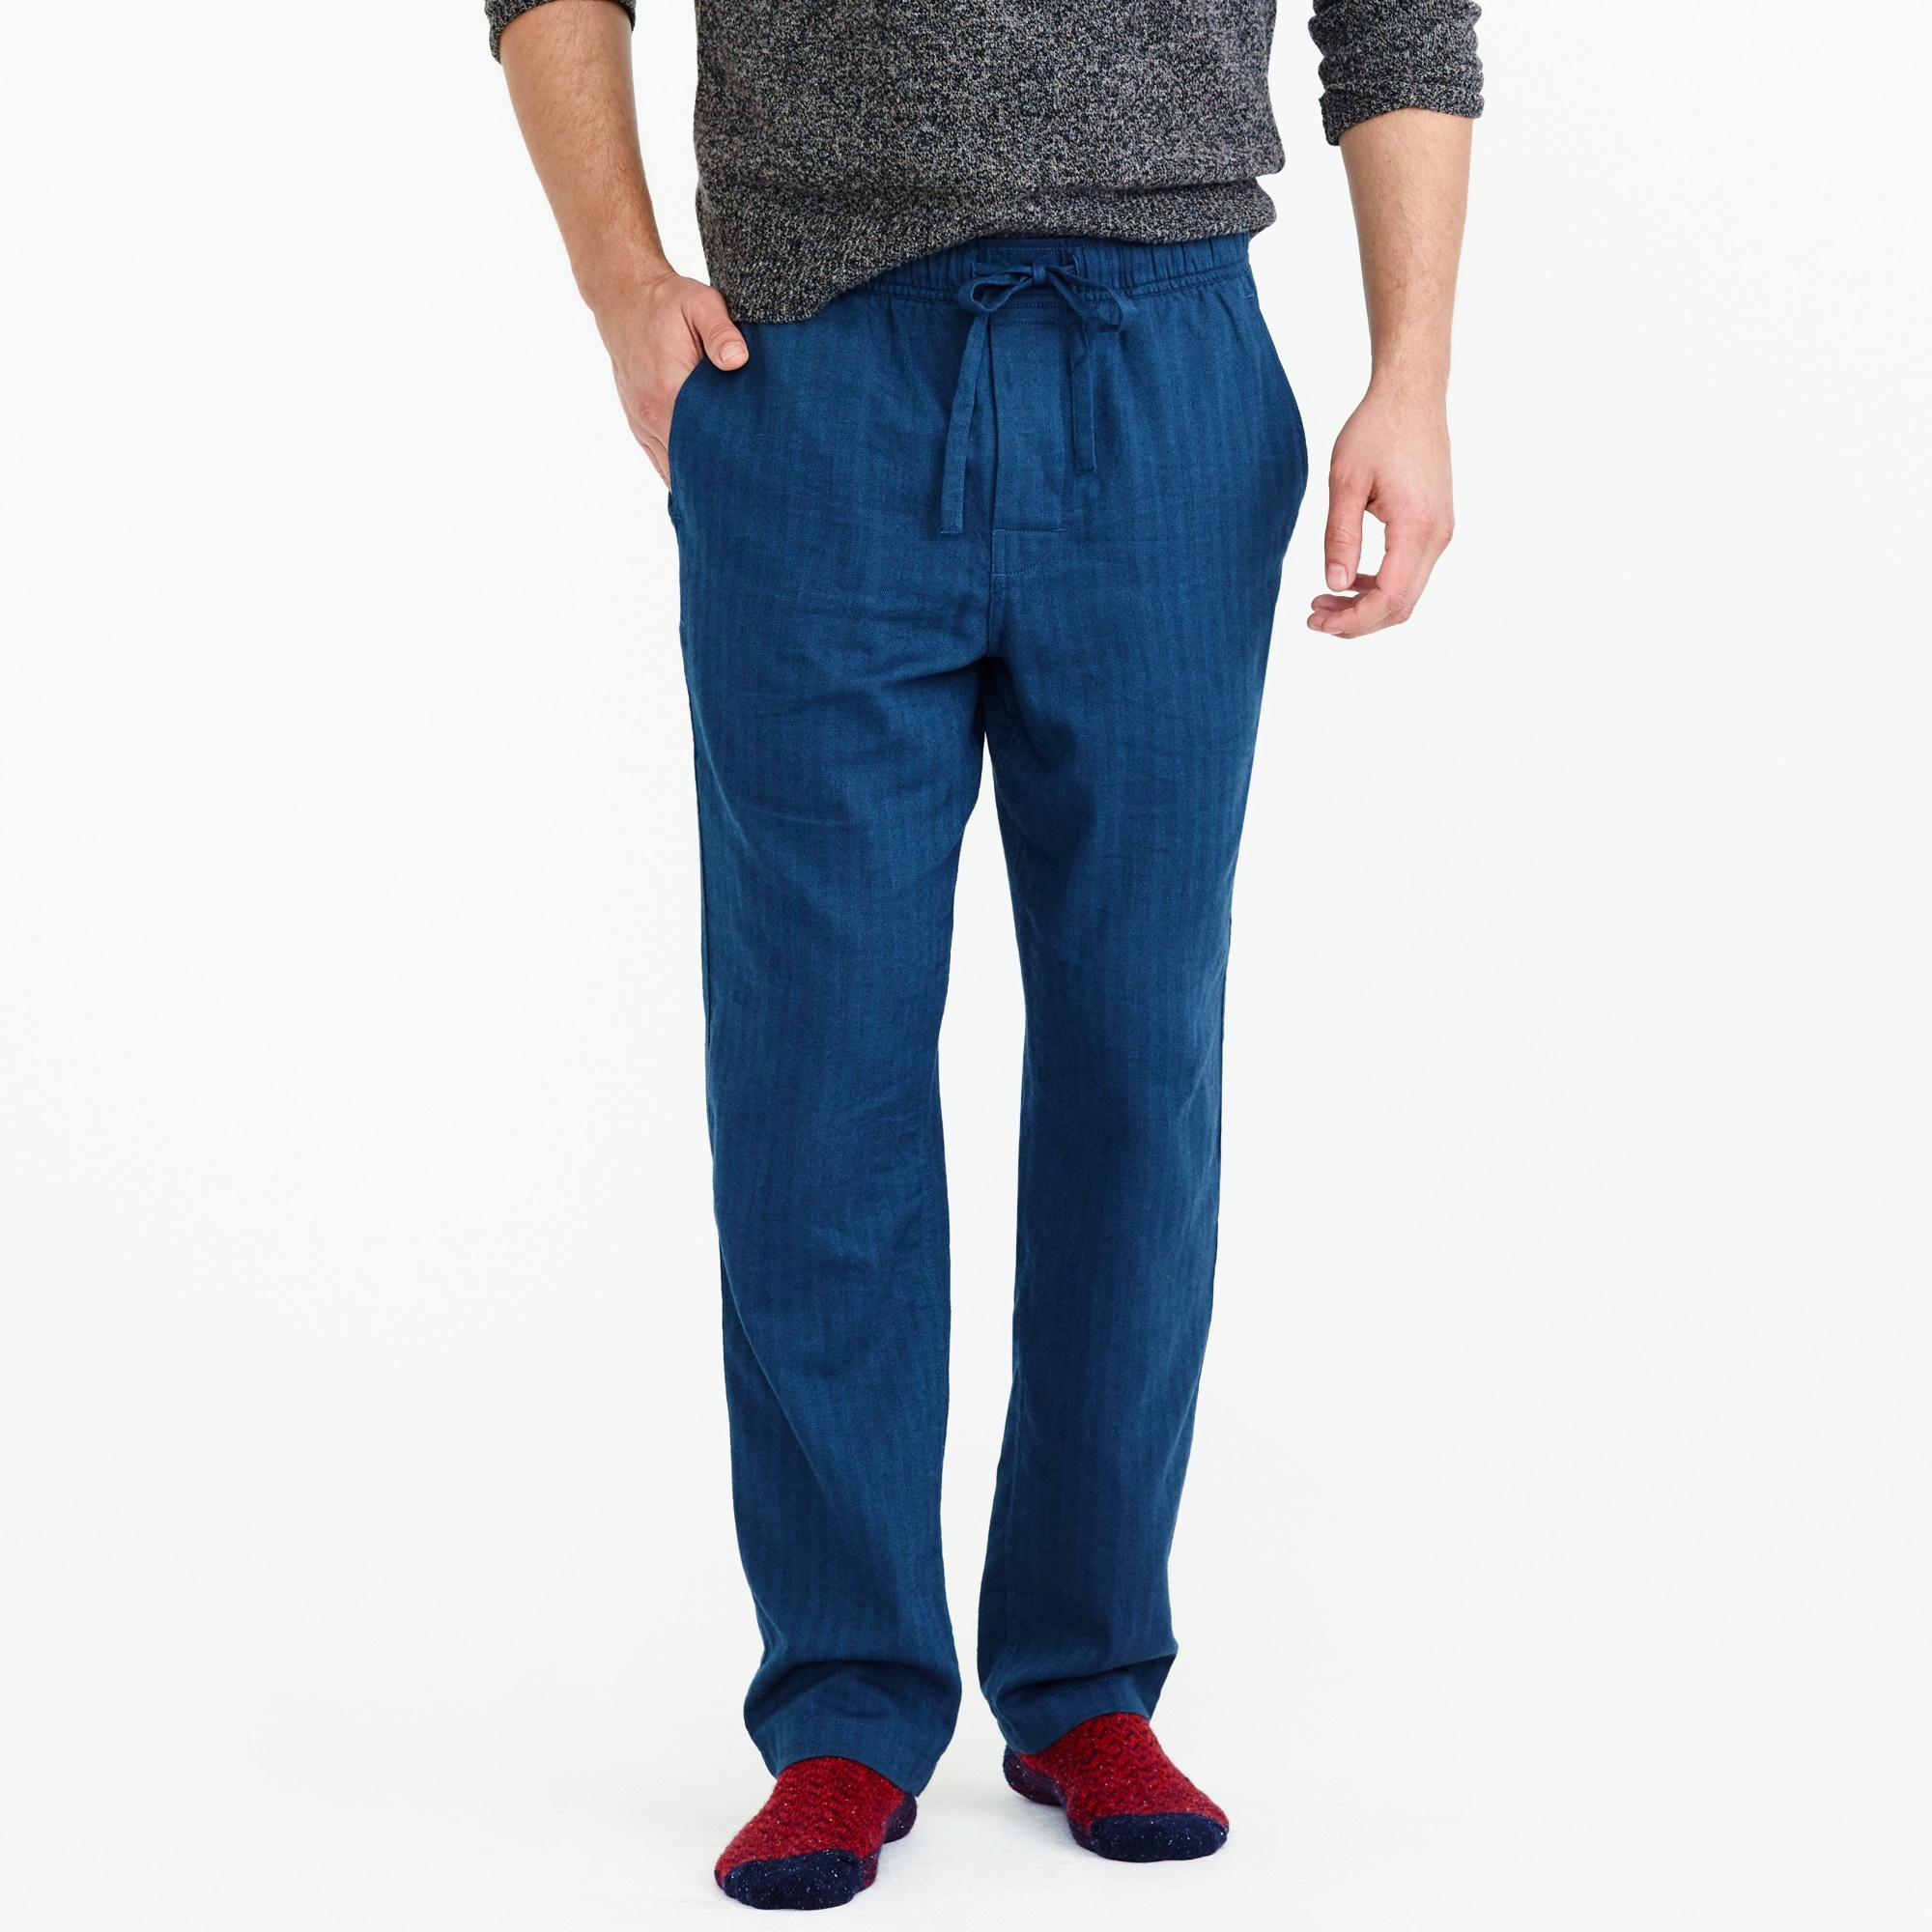 flannel pajama pant in herringbone : men's sleepwear